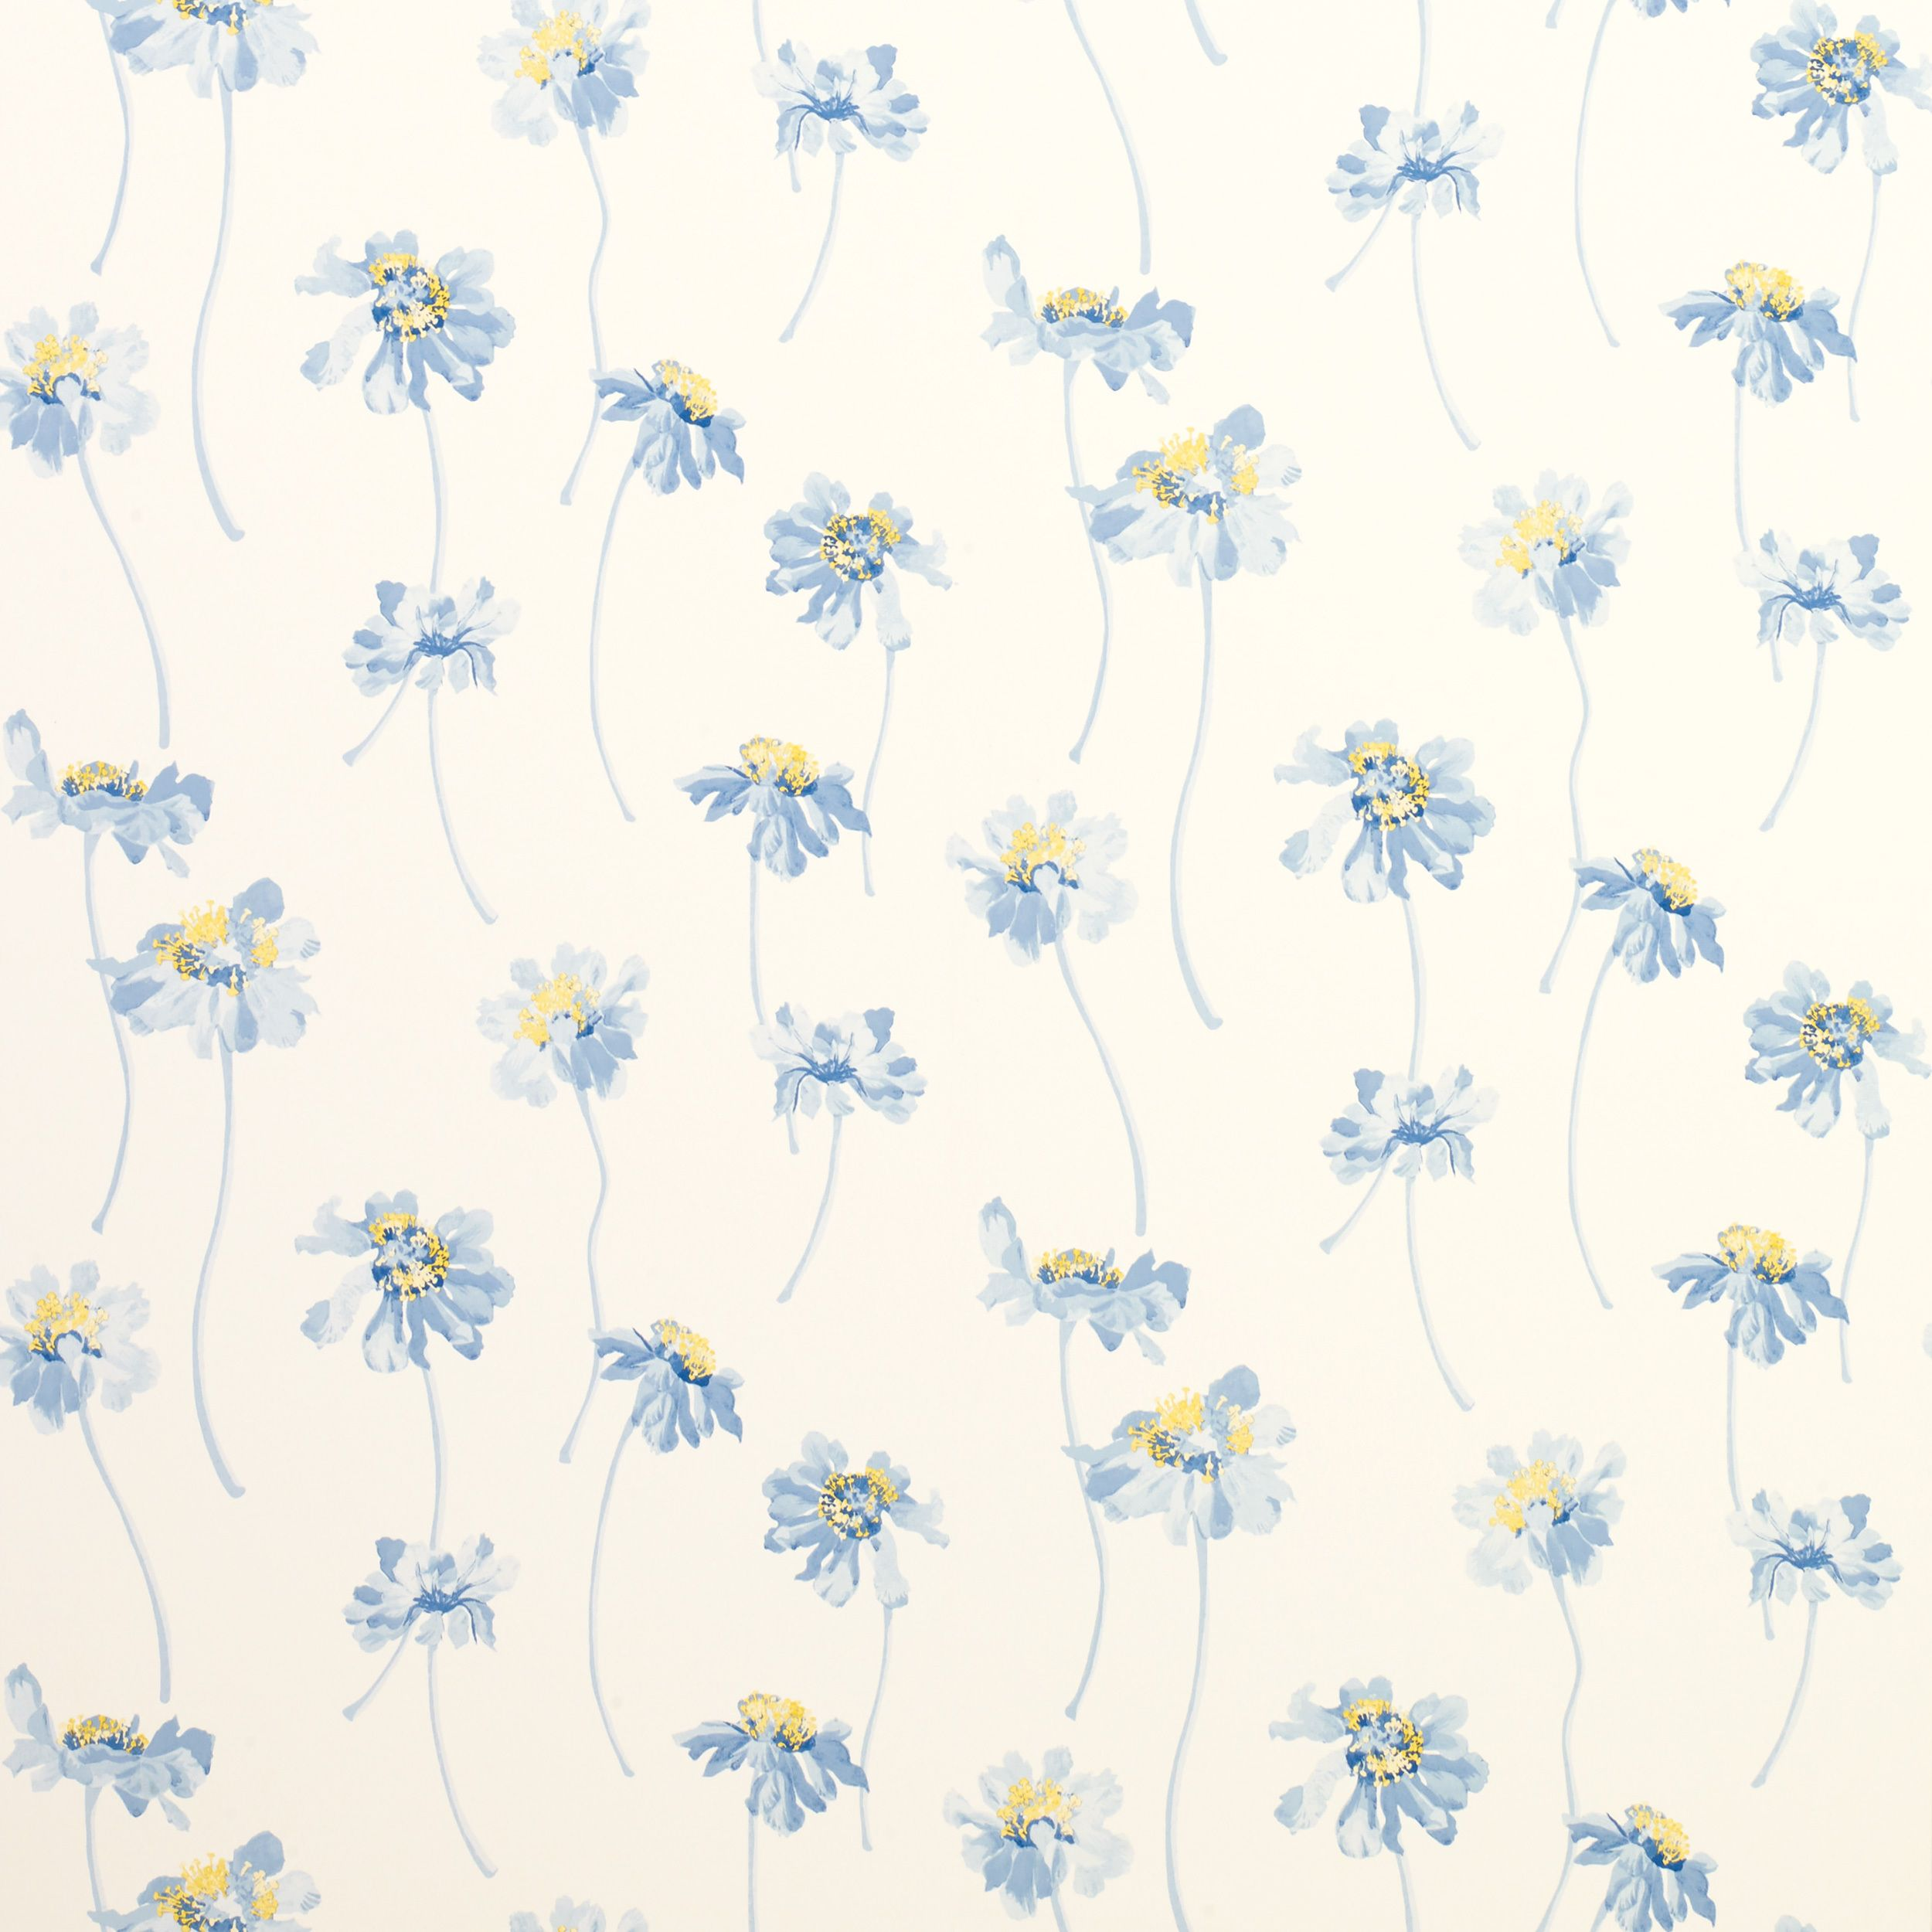 Runswick Seaspray Floral Wallpaper Floral pattern